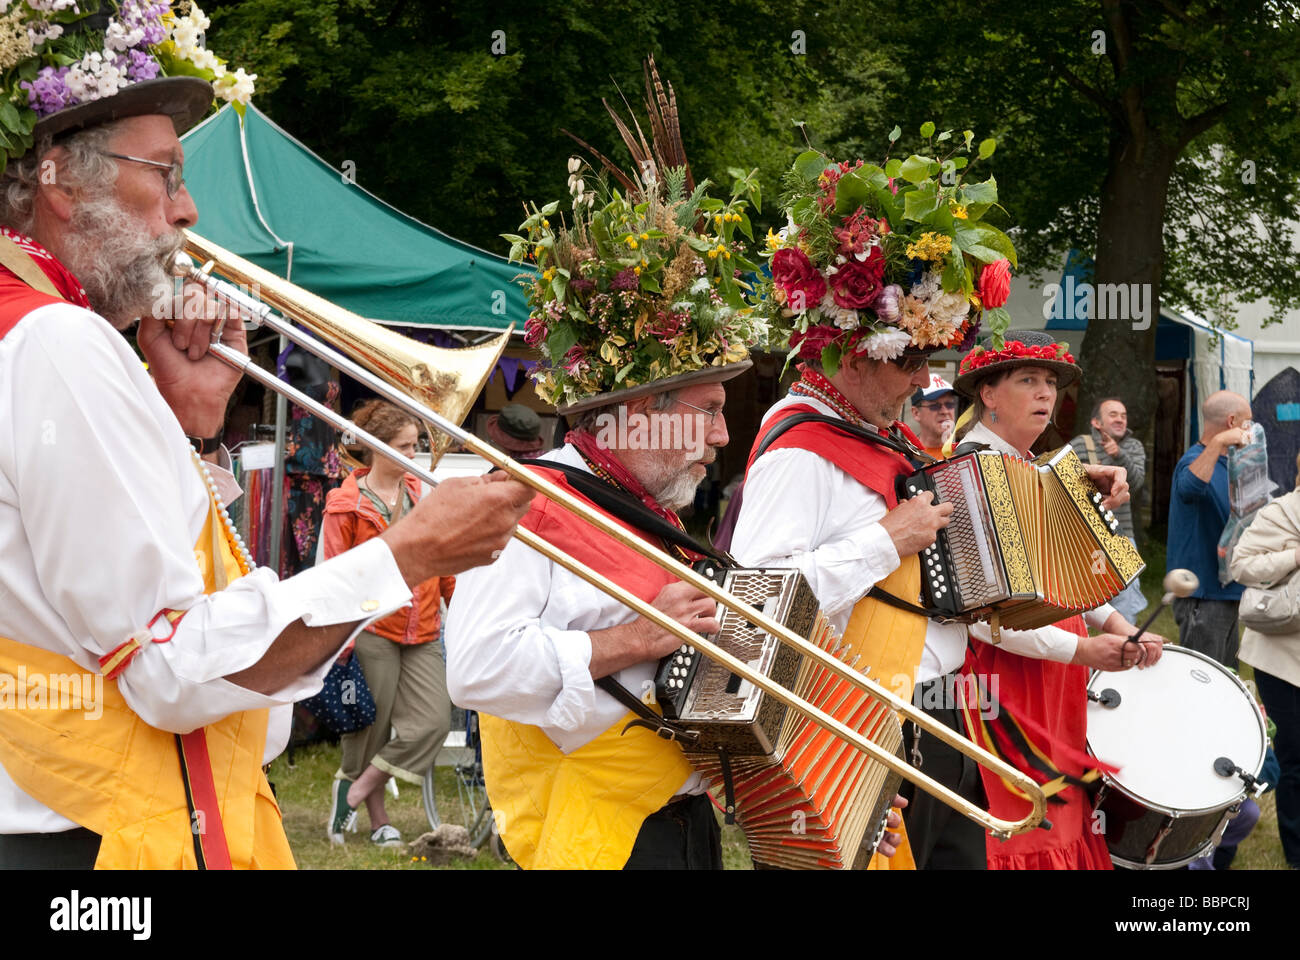 Traditional morris dancers (Knockhundred Shuttles Clog Morris) in full dress and hats at a country garden show - Stock Image